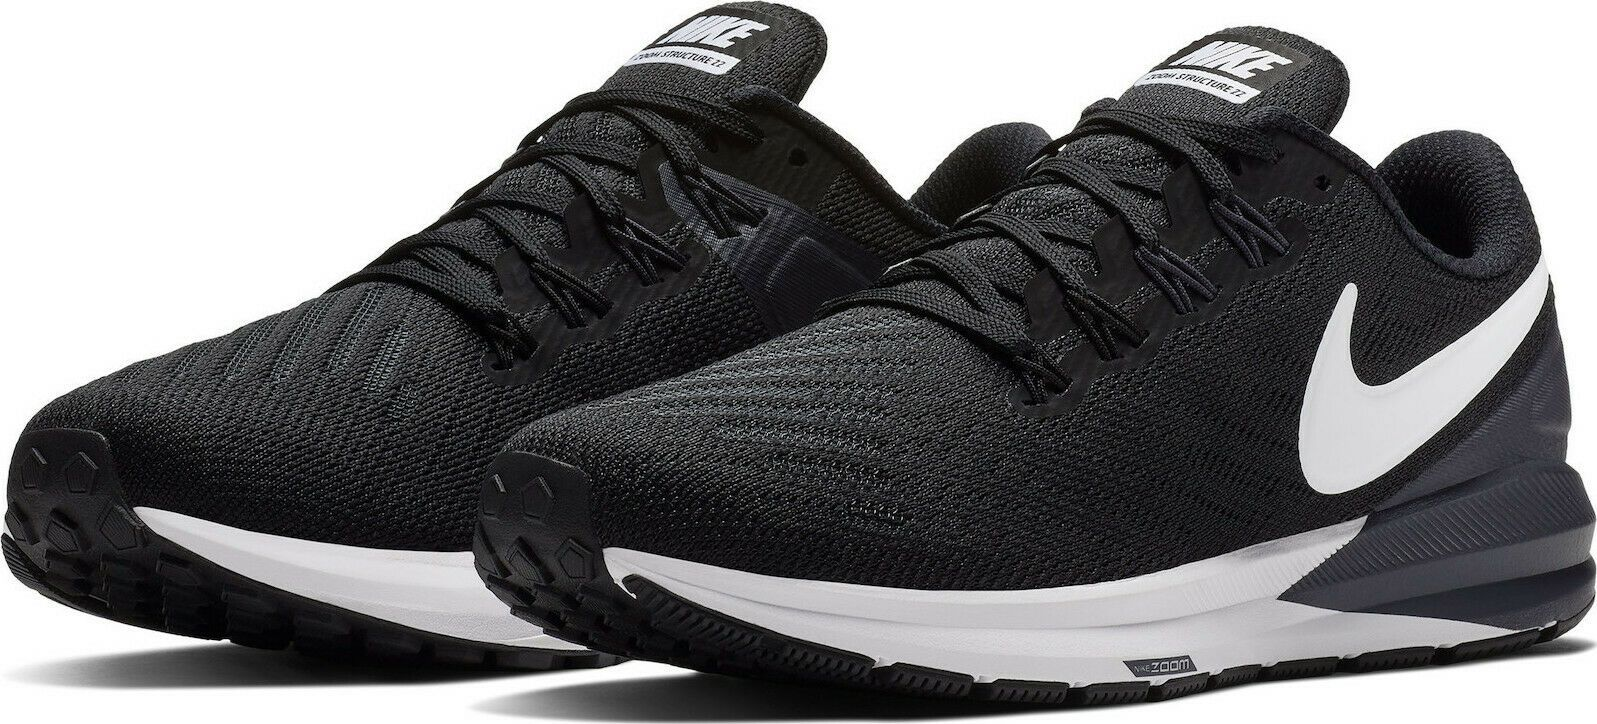 Nike Air Zoom Structure 22 Black White Grey AA1640-002 Women/'s Running Shoes